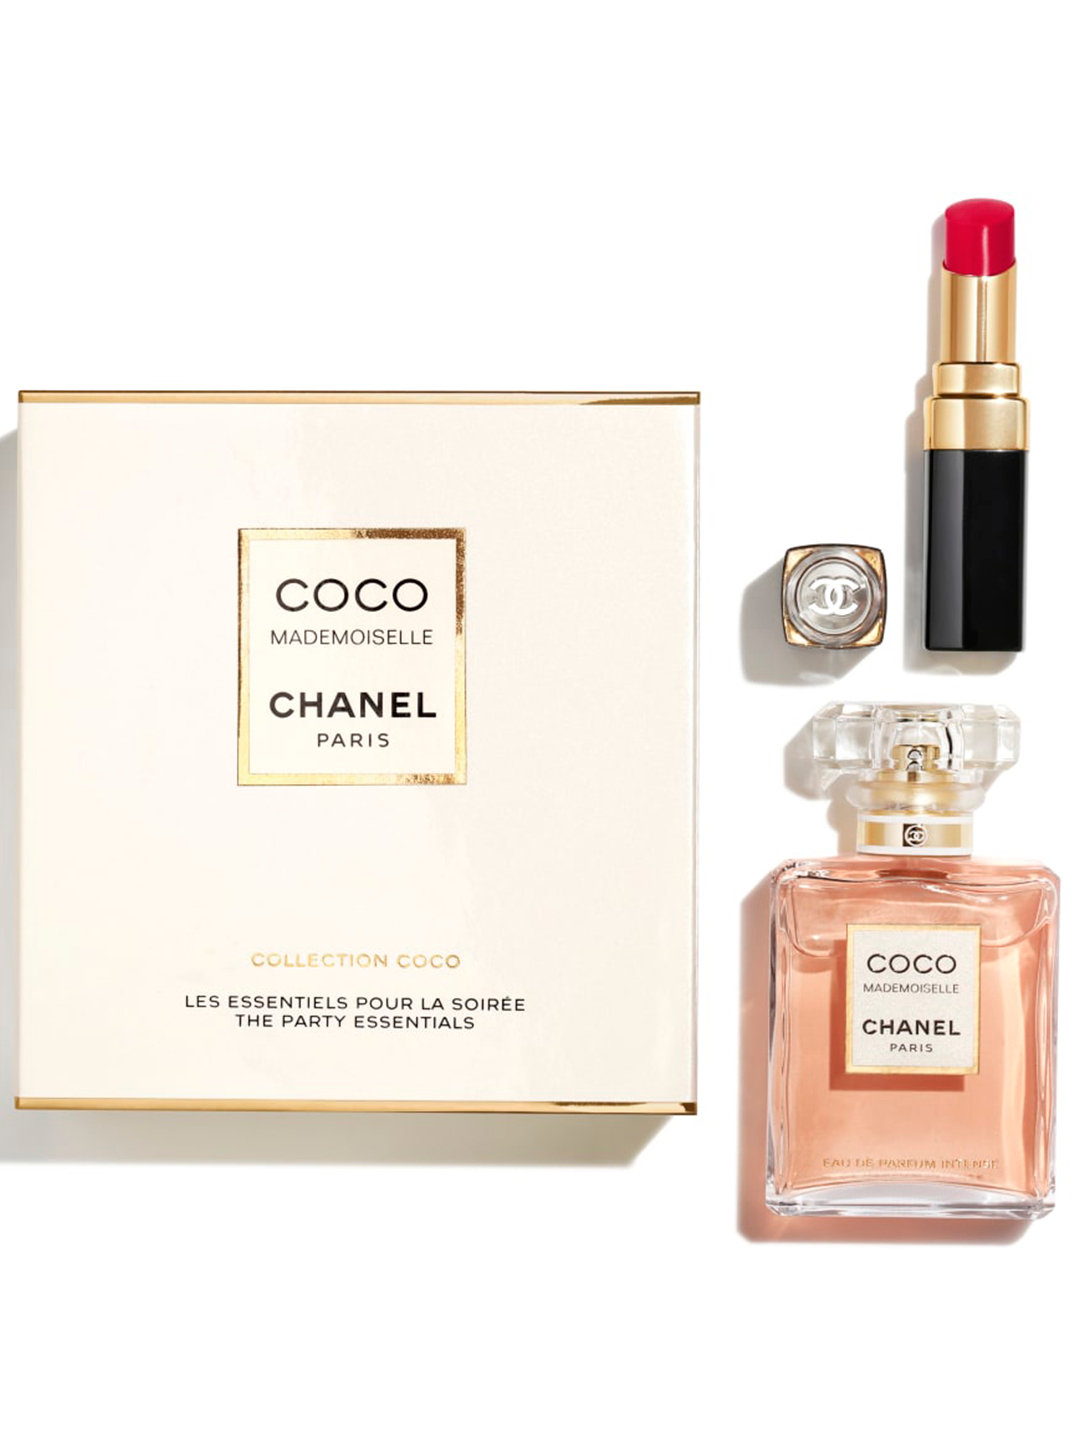 CHANEL The Party Essentials CHANEL